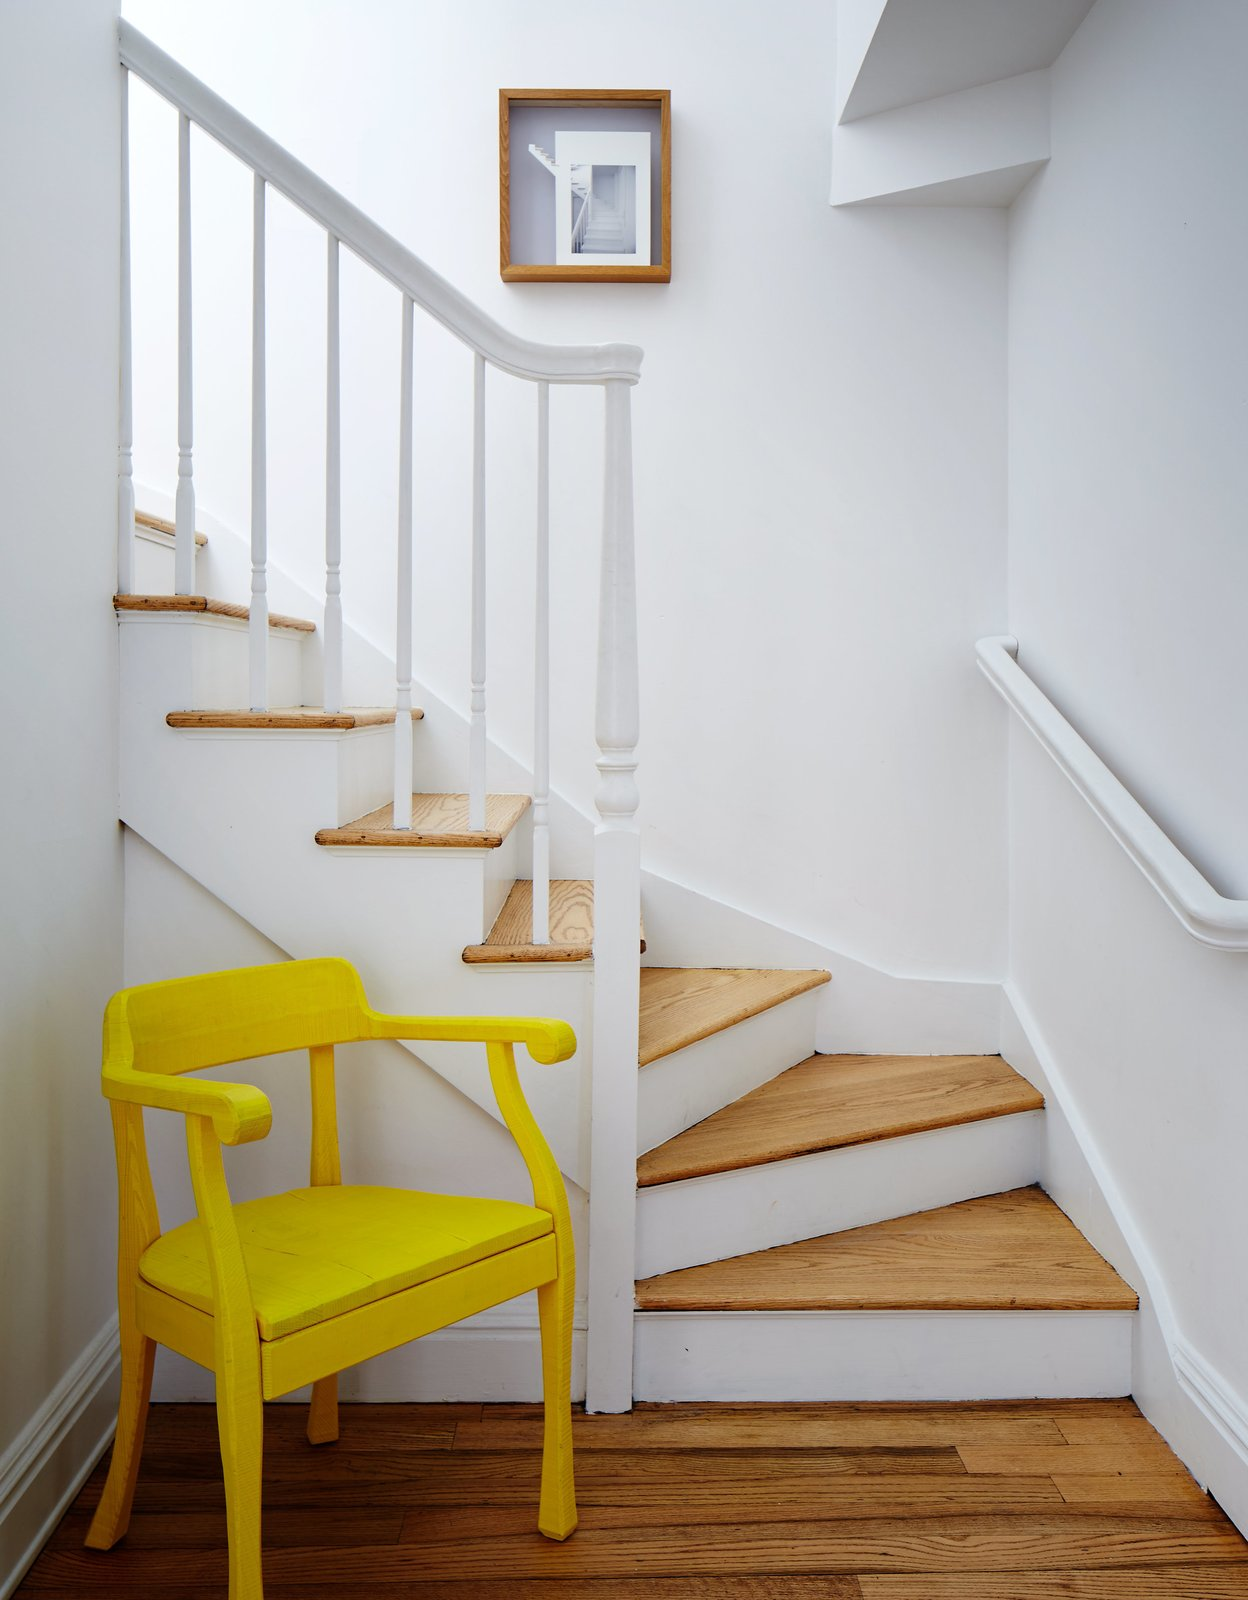 In the hallway, a yellow Raw chair by Jens Fager for Muuto pops against the white staircase. Tagged: Staircase, Wood Tread, and Metal Railing.  Photo 13 of 14 in A Danish Design Kingpin Moves to NYC with a Shipping Container of Furniture in Tow